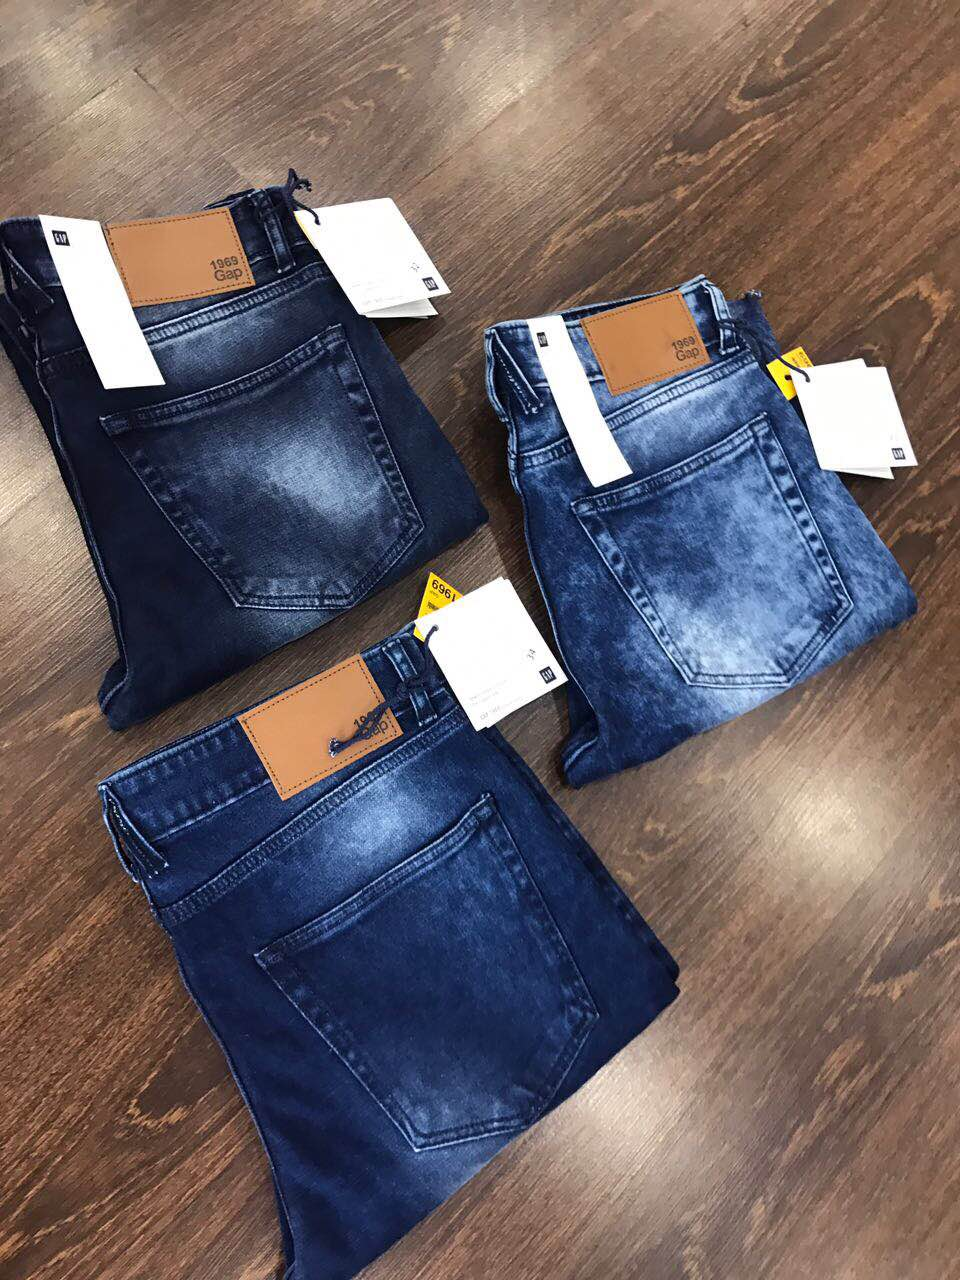 GAP denims available for export in bangalore